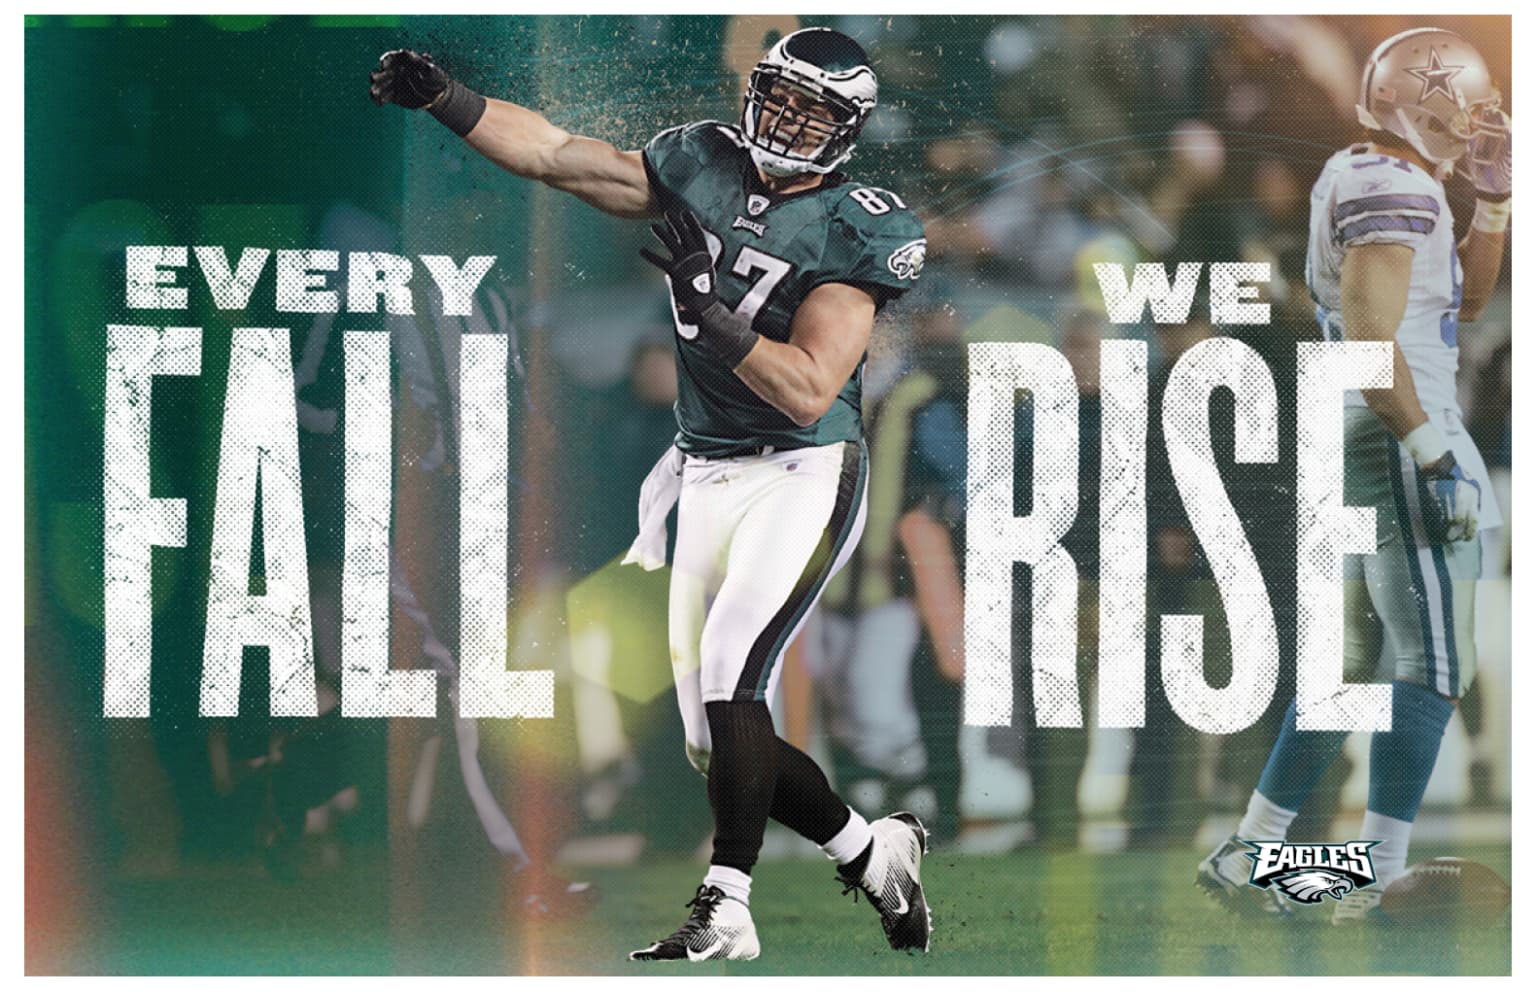 Philadelphia Eagles Brotherly Love Campaign